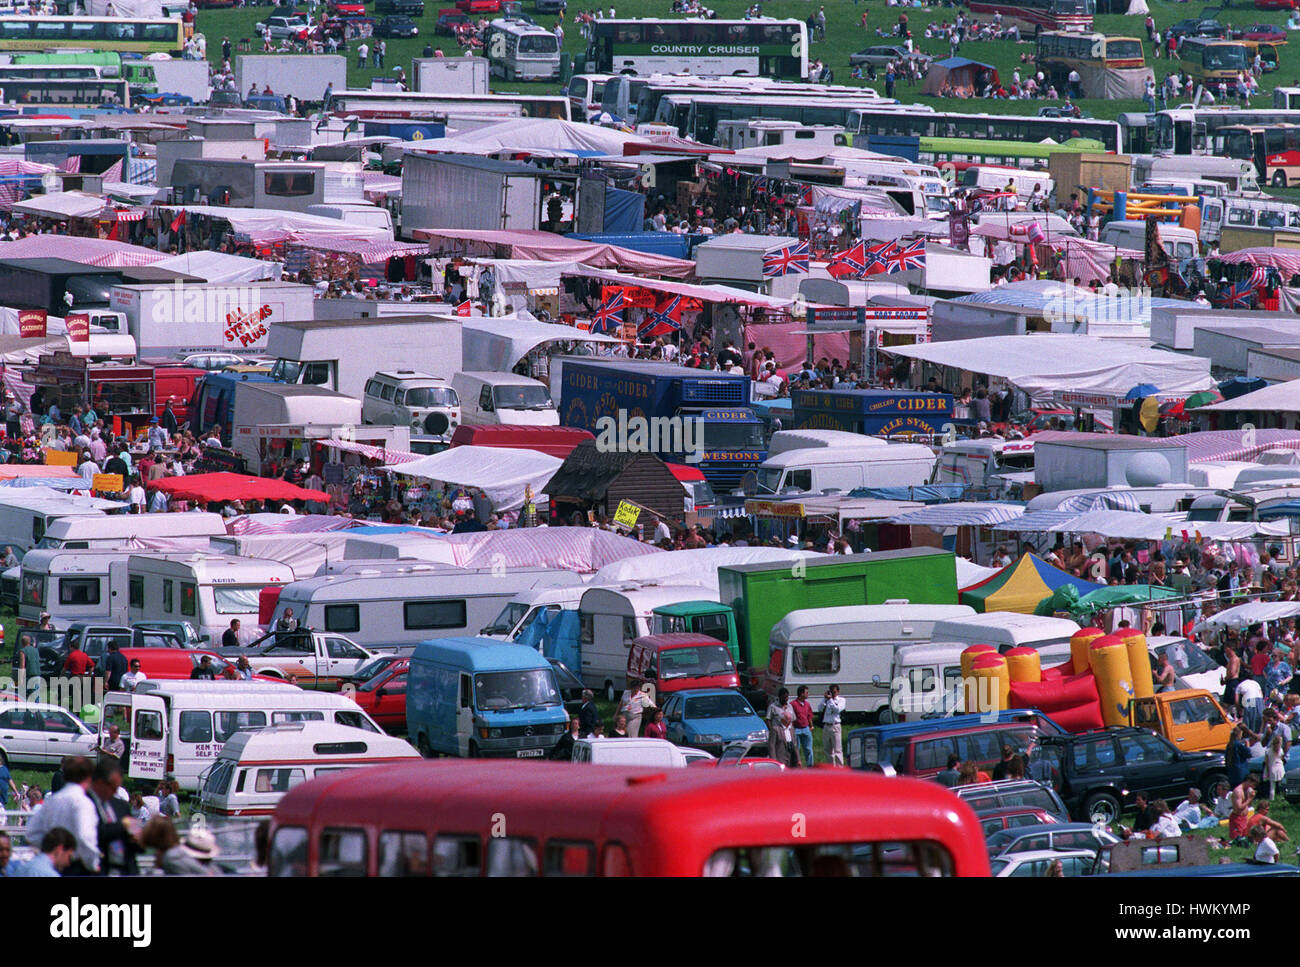 EPSOM DERBY GENERAL VIEW 25 August 1994 - Stock Image